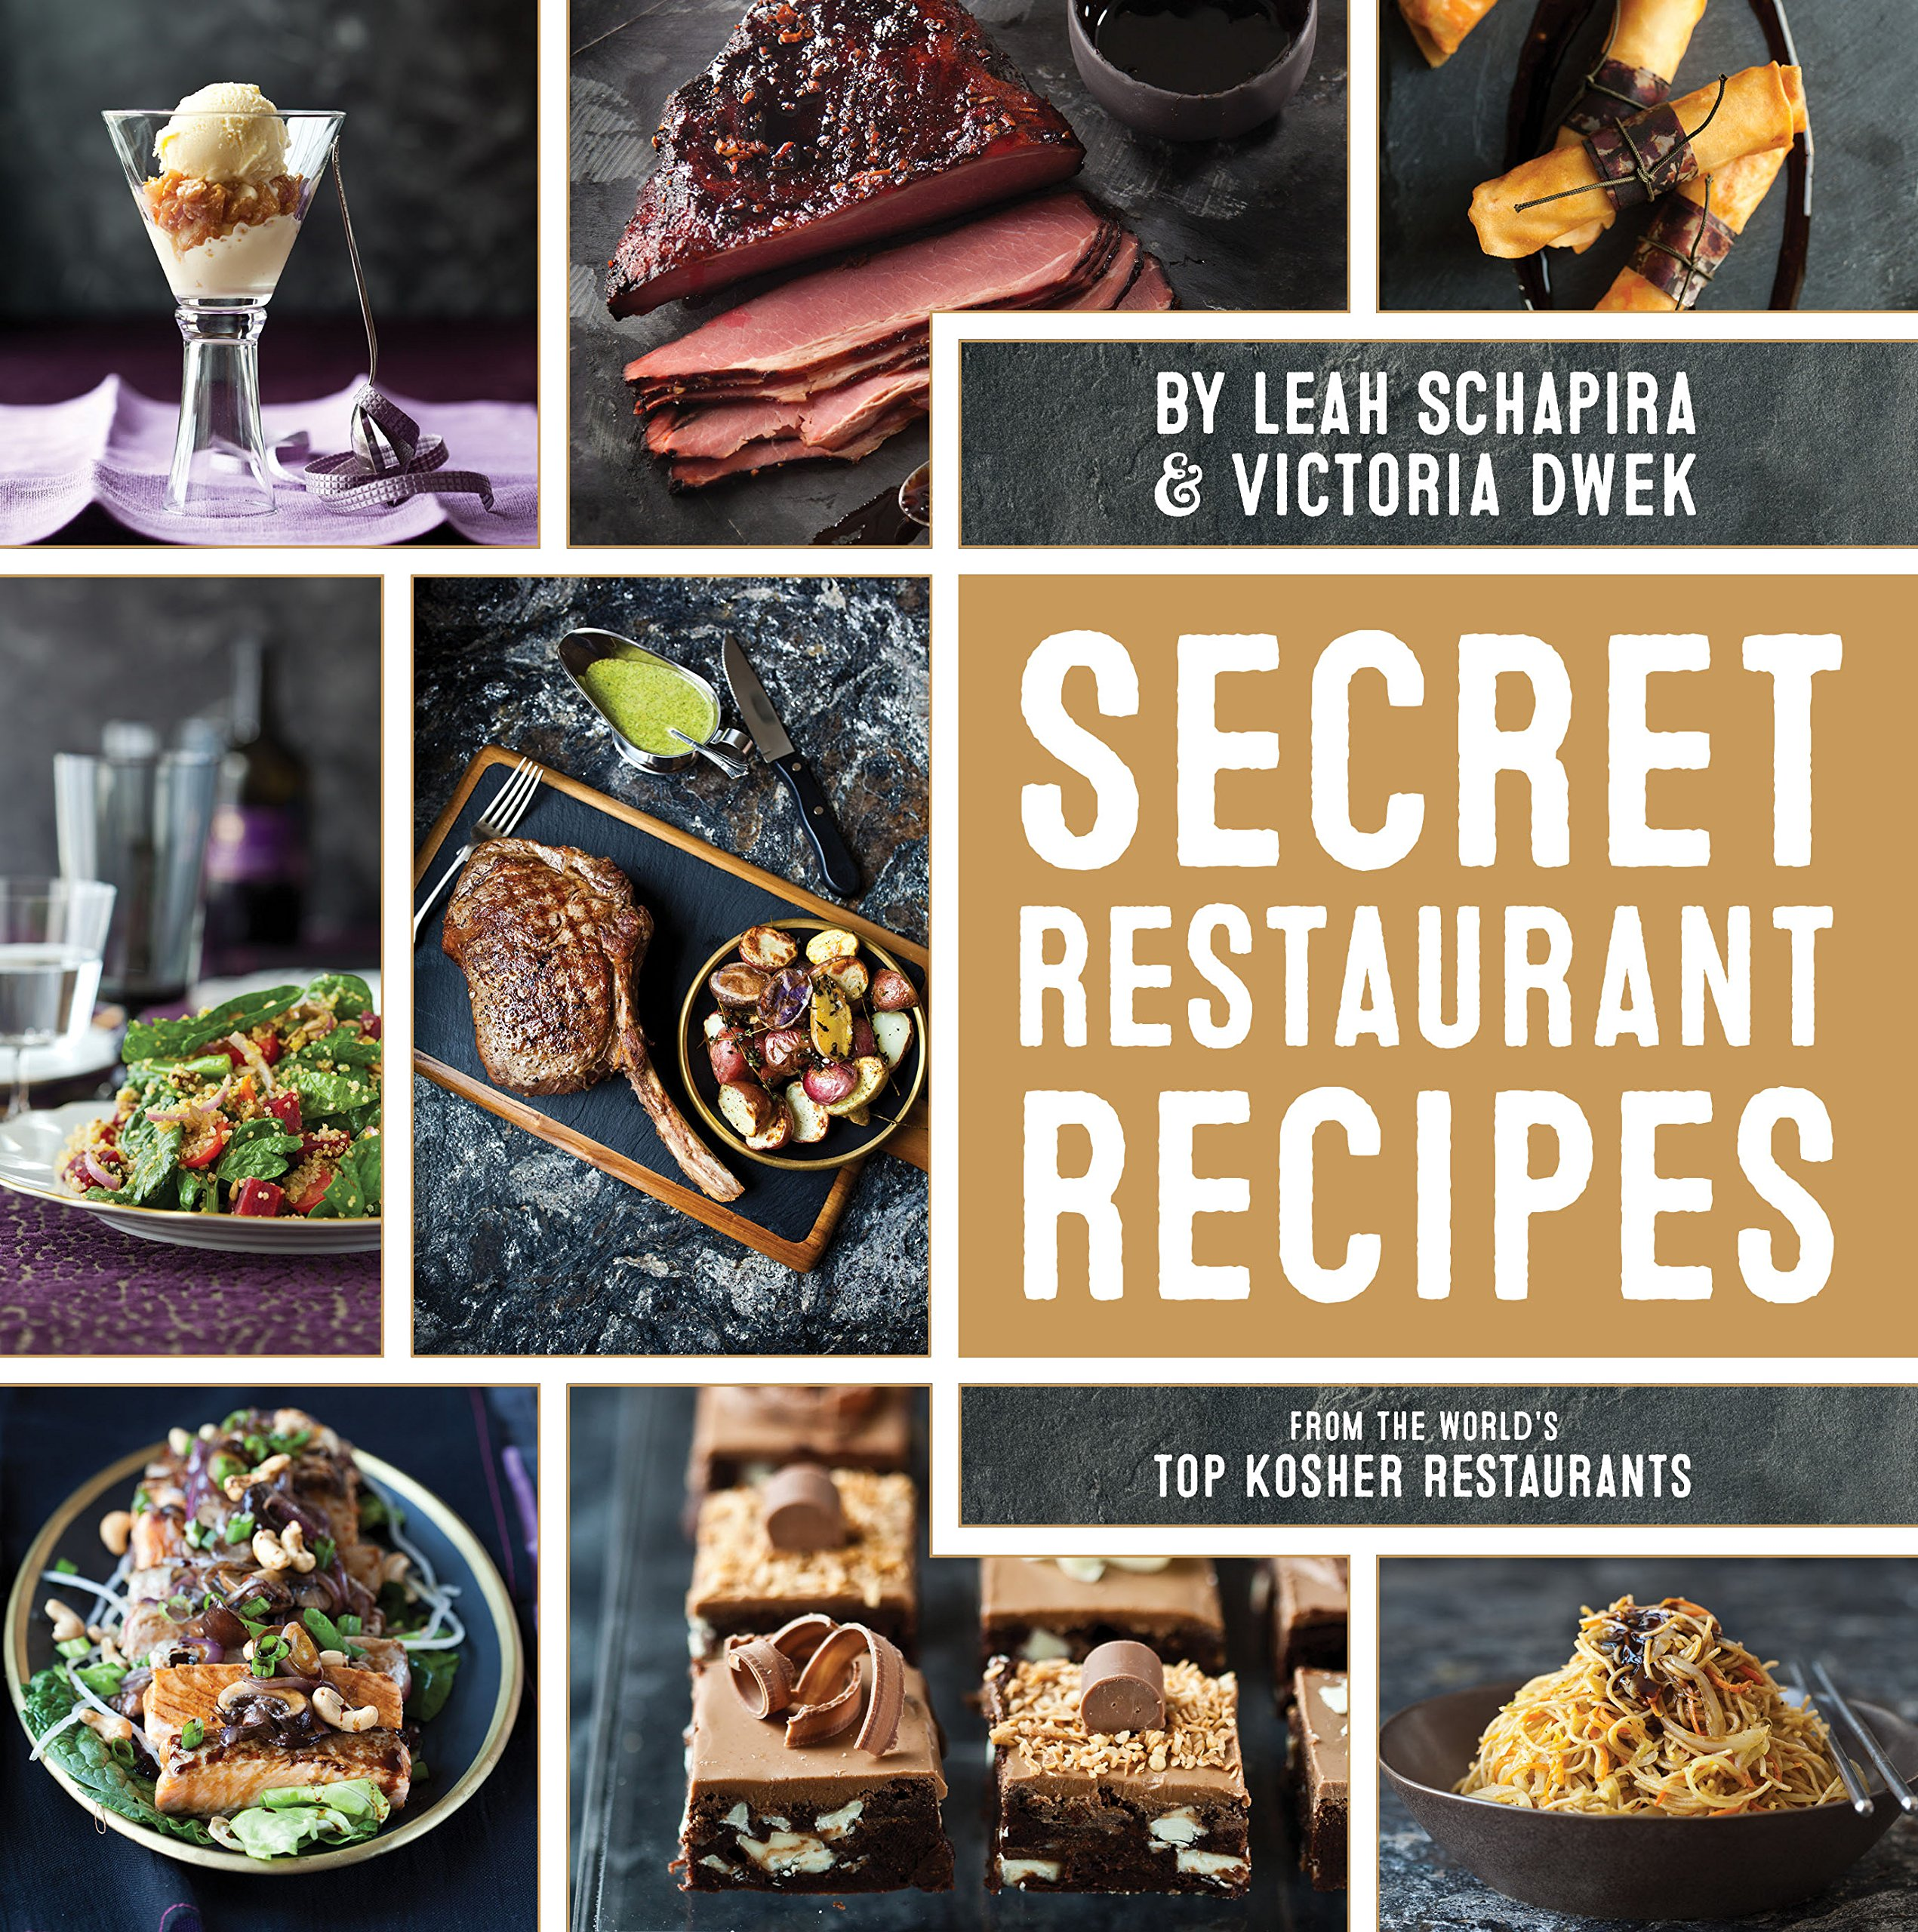 Secret restaurant recipes from the worlds top kosher restaurants secret restaurant recipes from the worlds top kosher restaurants leah schapira victoria dwek 9781422615287 amazon books forumfinder Choice Image